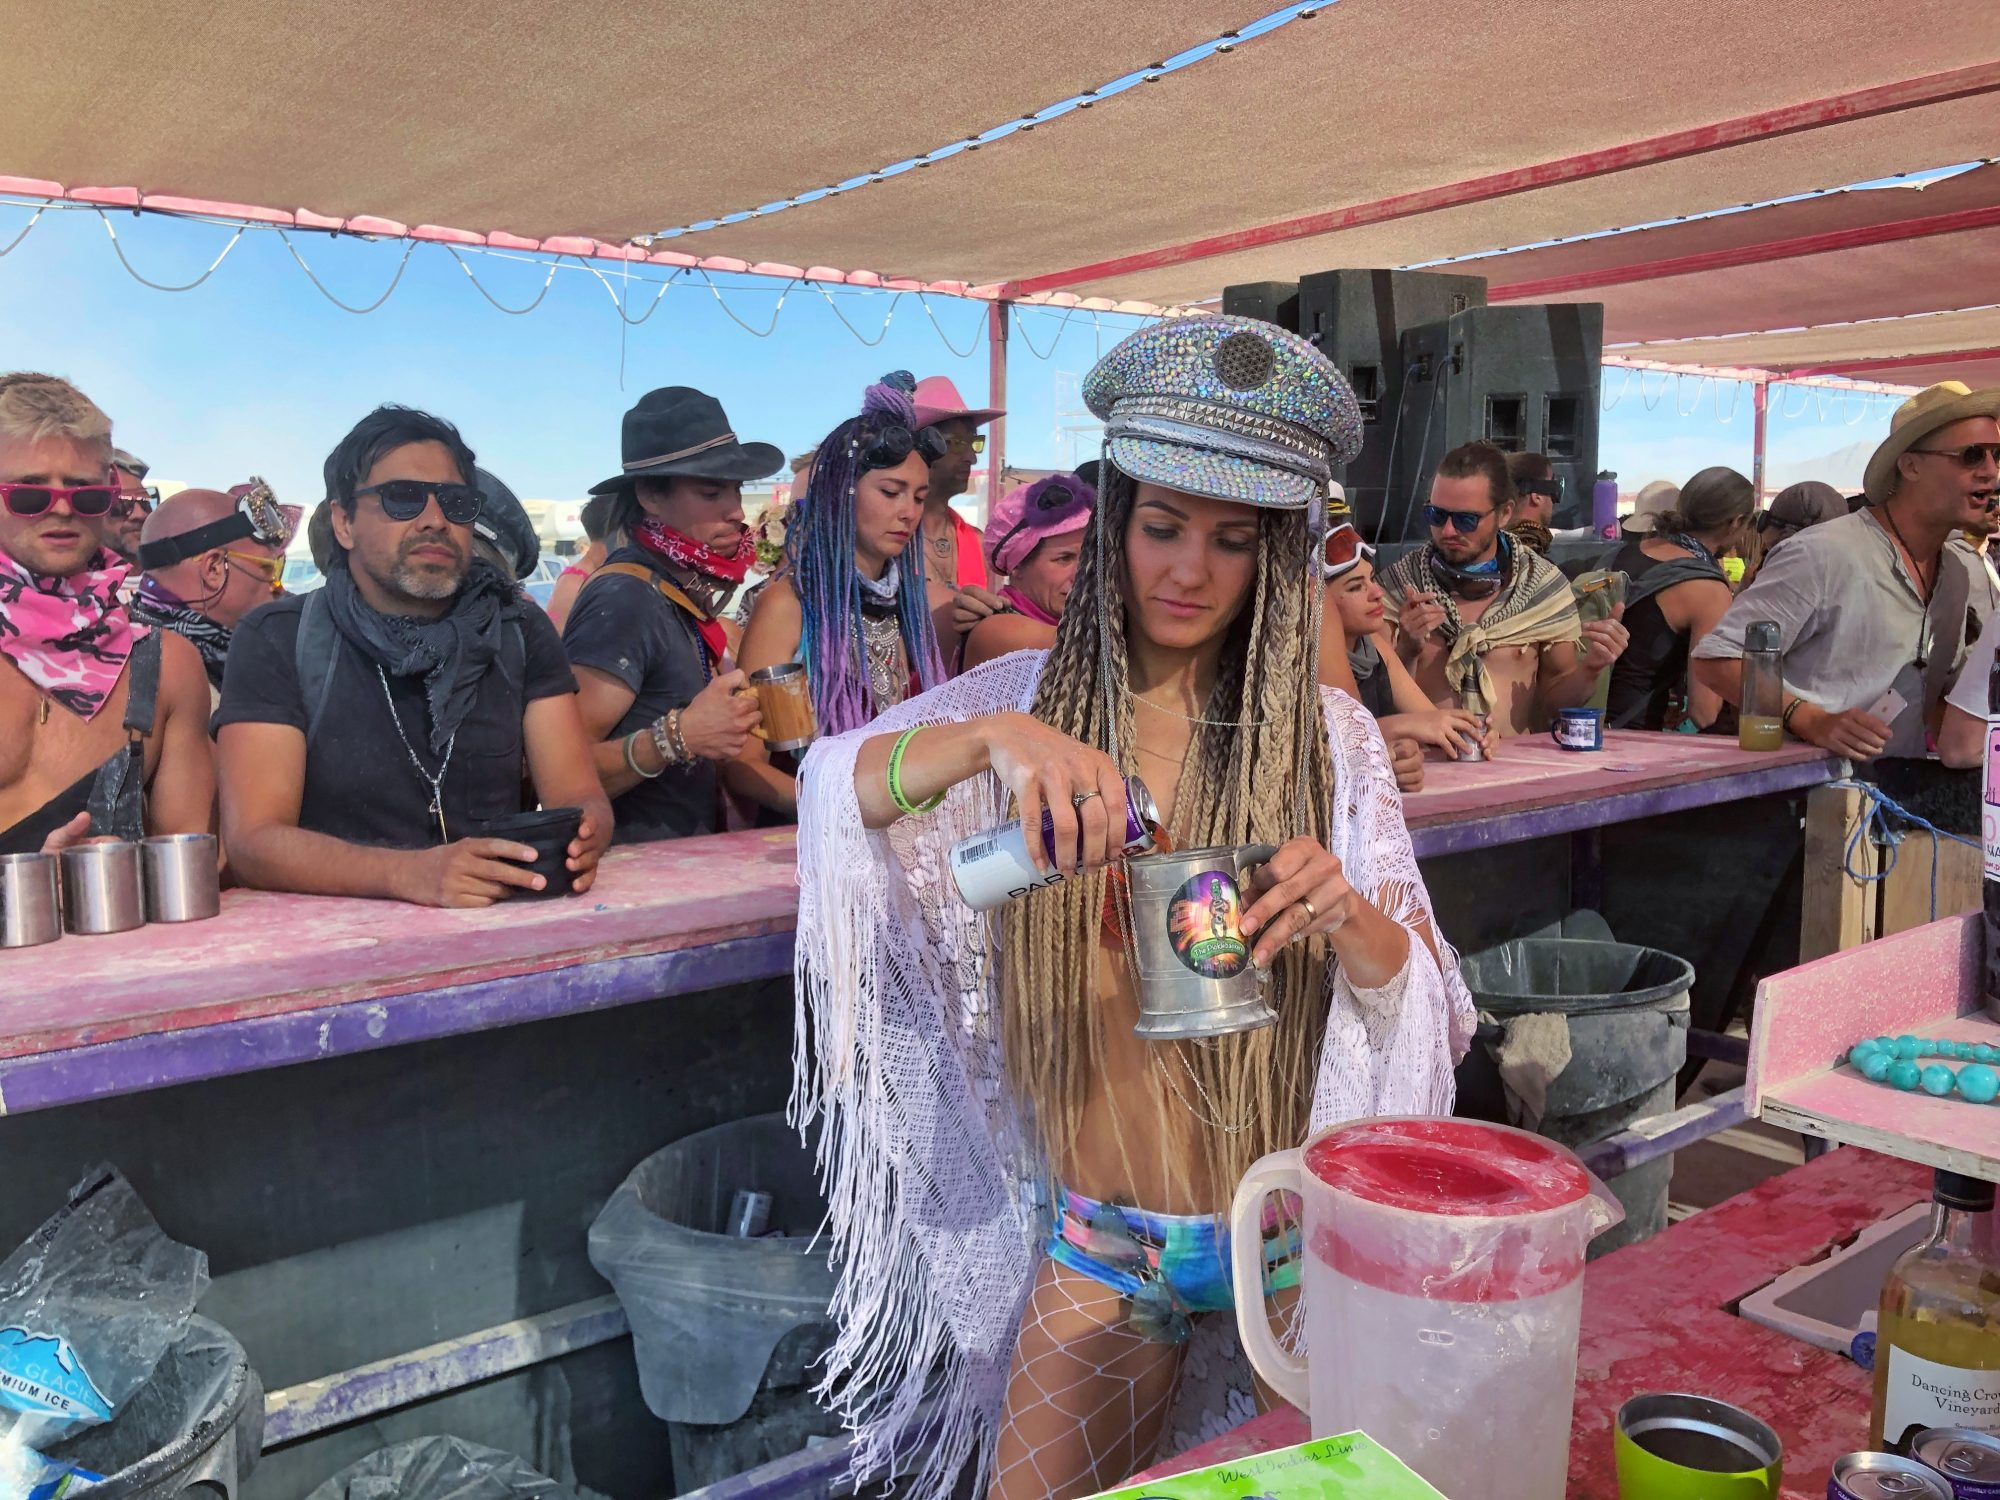 Pouring drinks at burning man pink mammoth